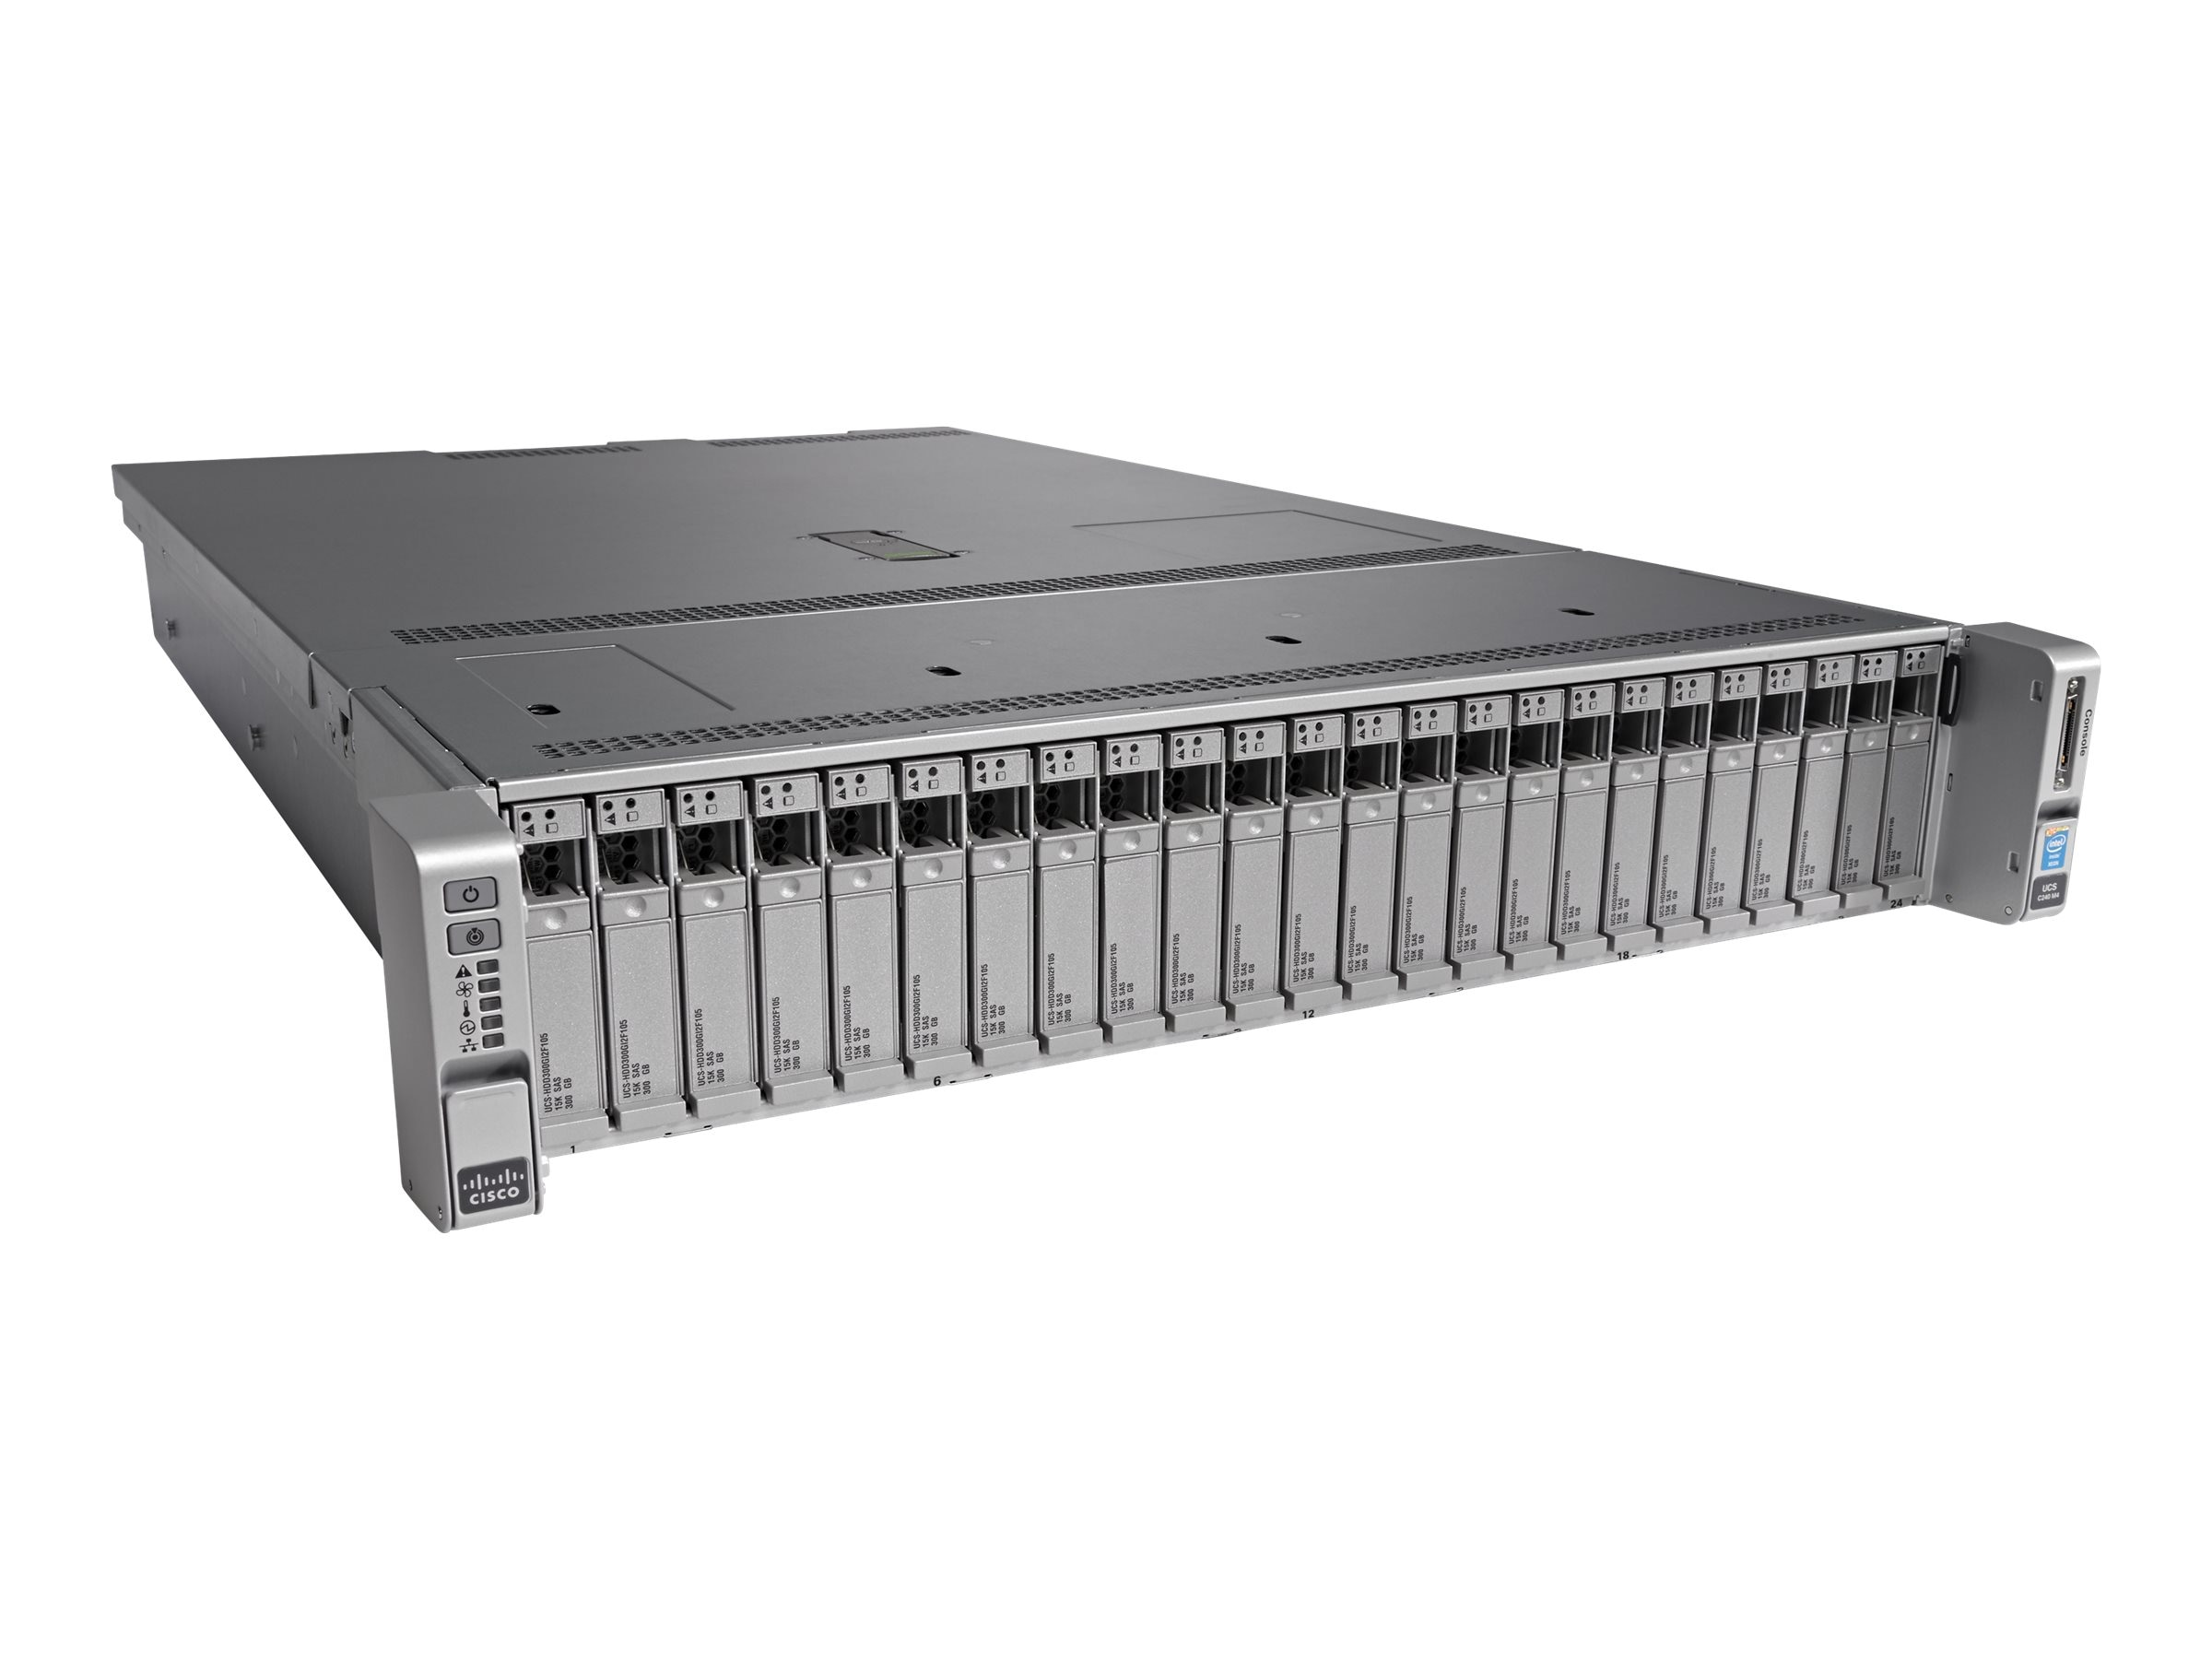 Cisco UCS-SPR-C240M4-BS3 Image 4